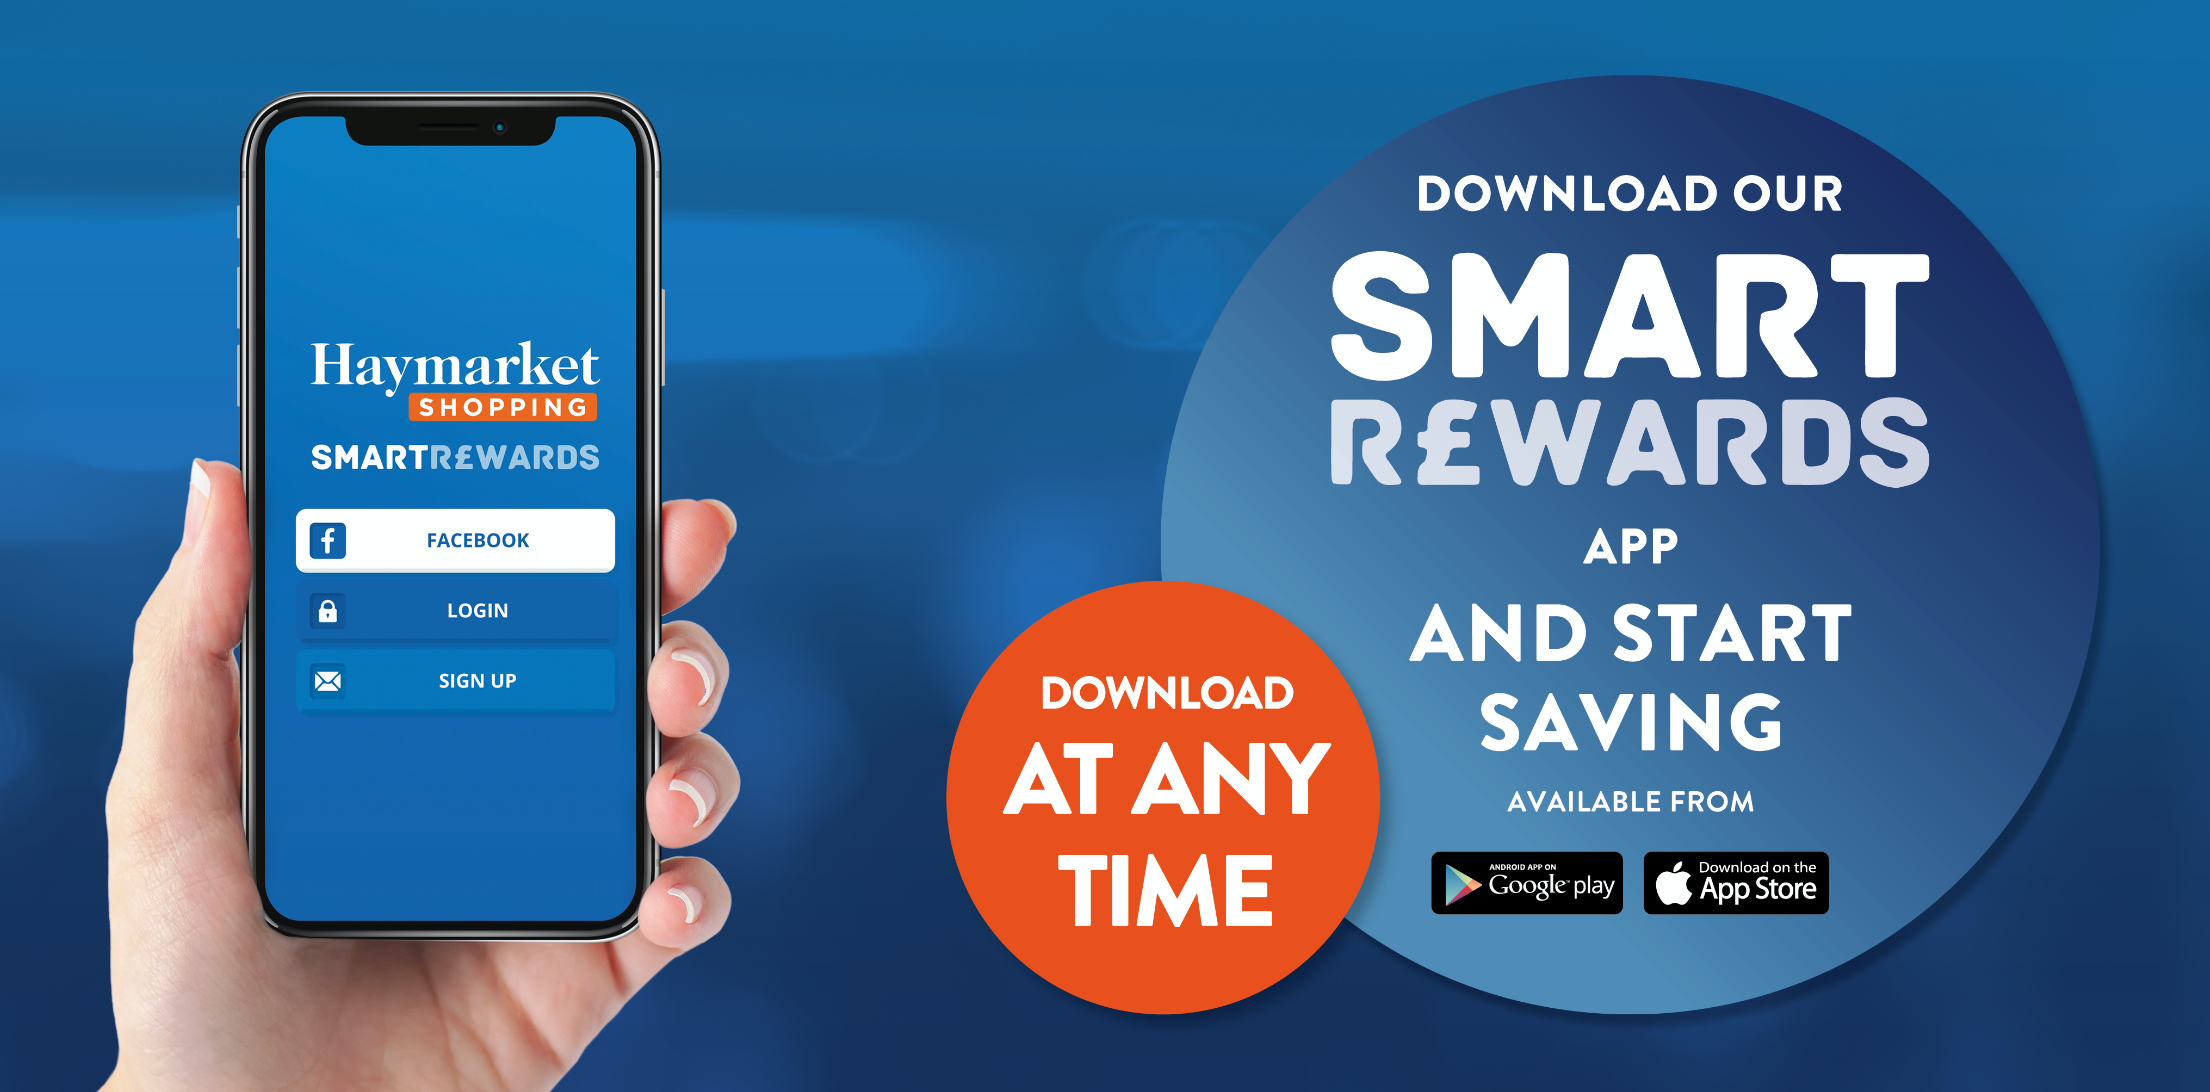 Smart Rewards App